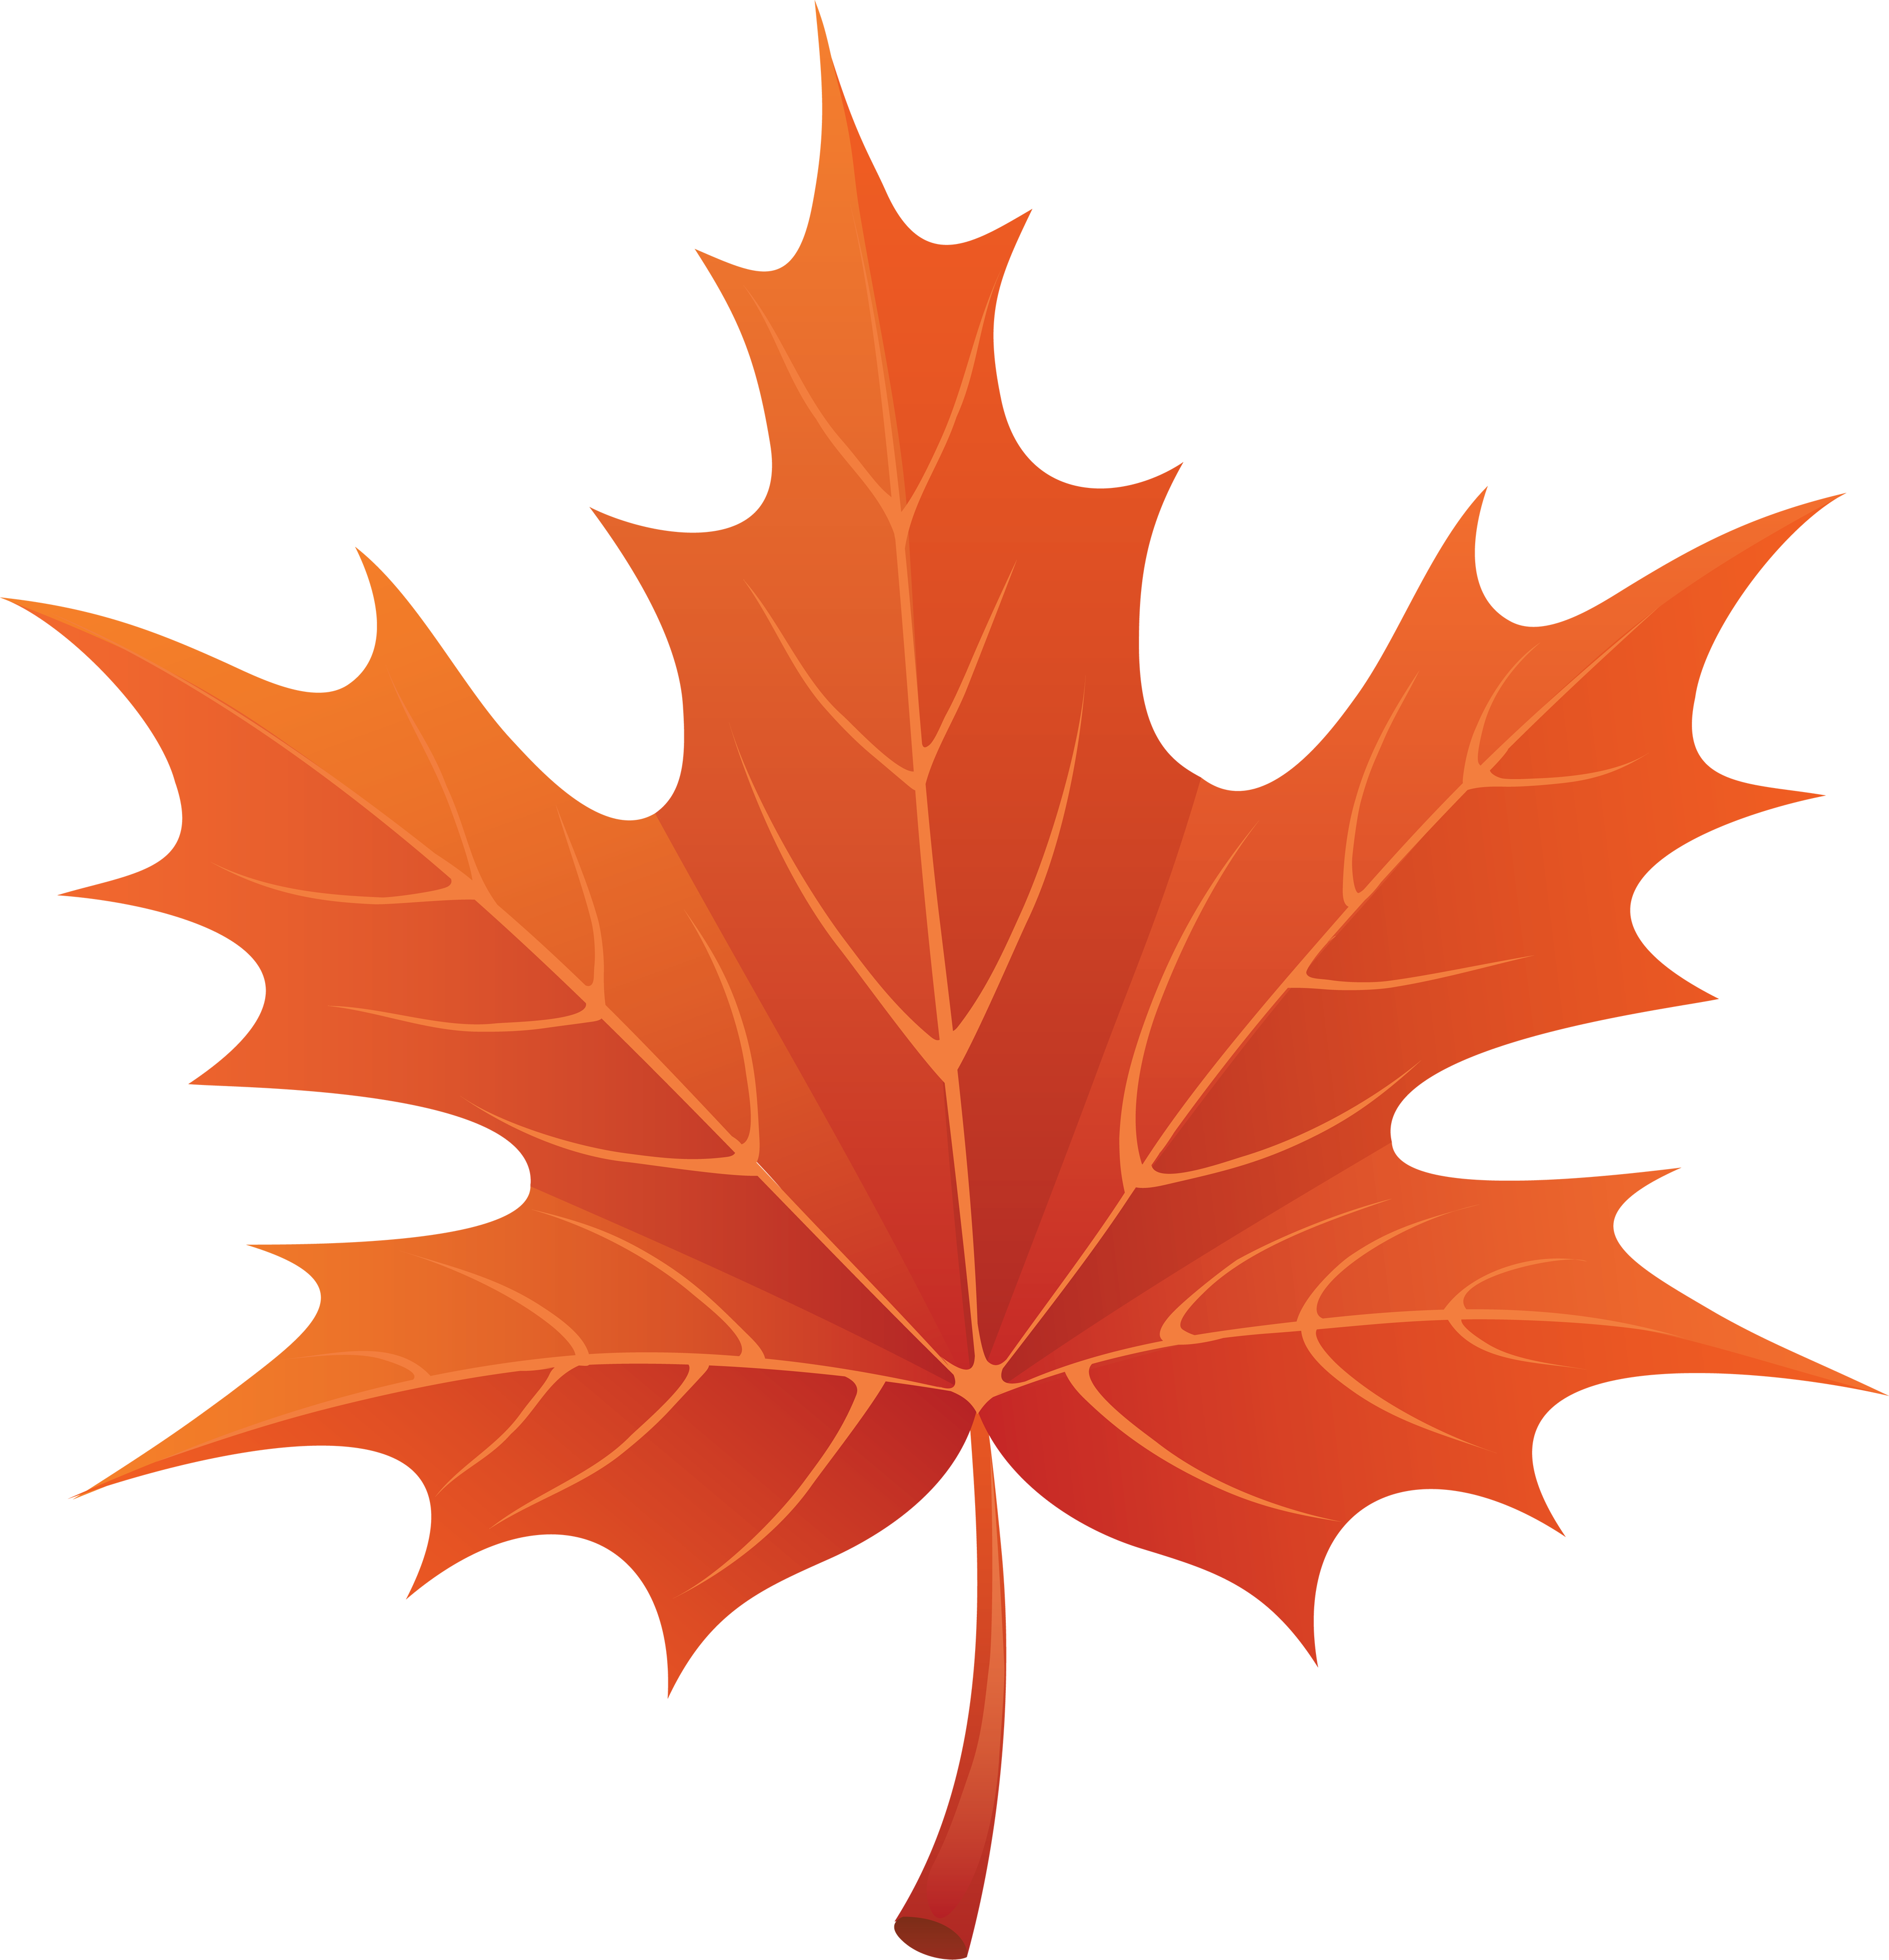 Fall Leaves Border Clipart. Download Png-fall leaves border clipart. Download Png Image Maple Png Leaf-6